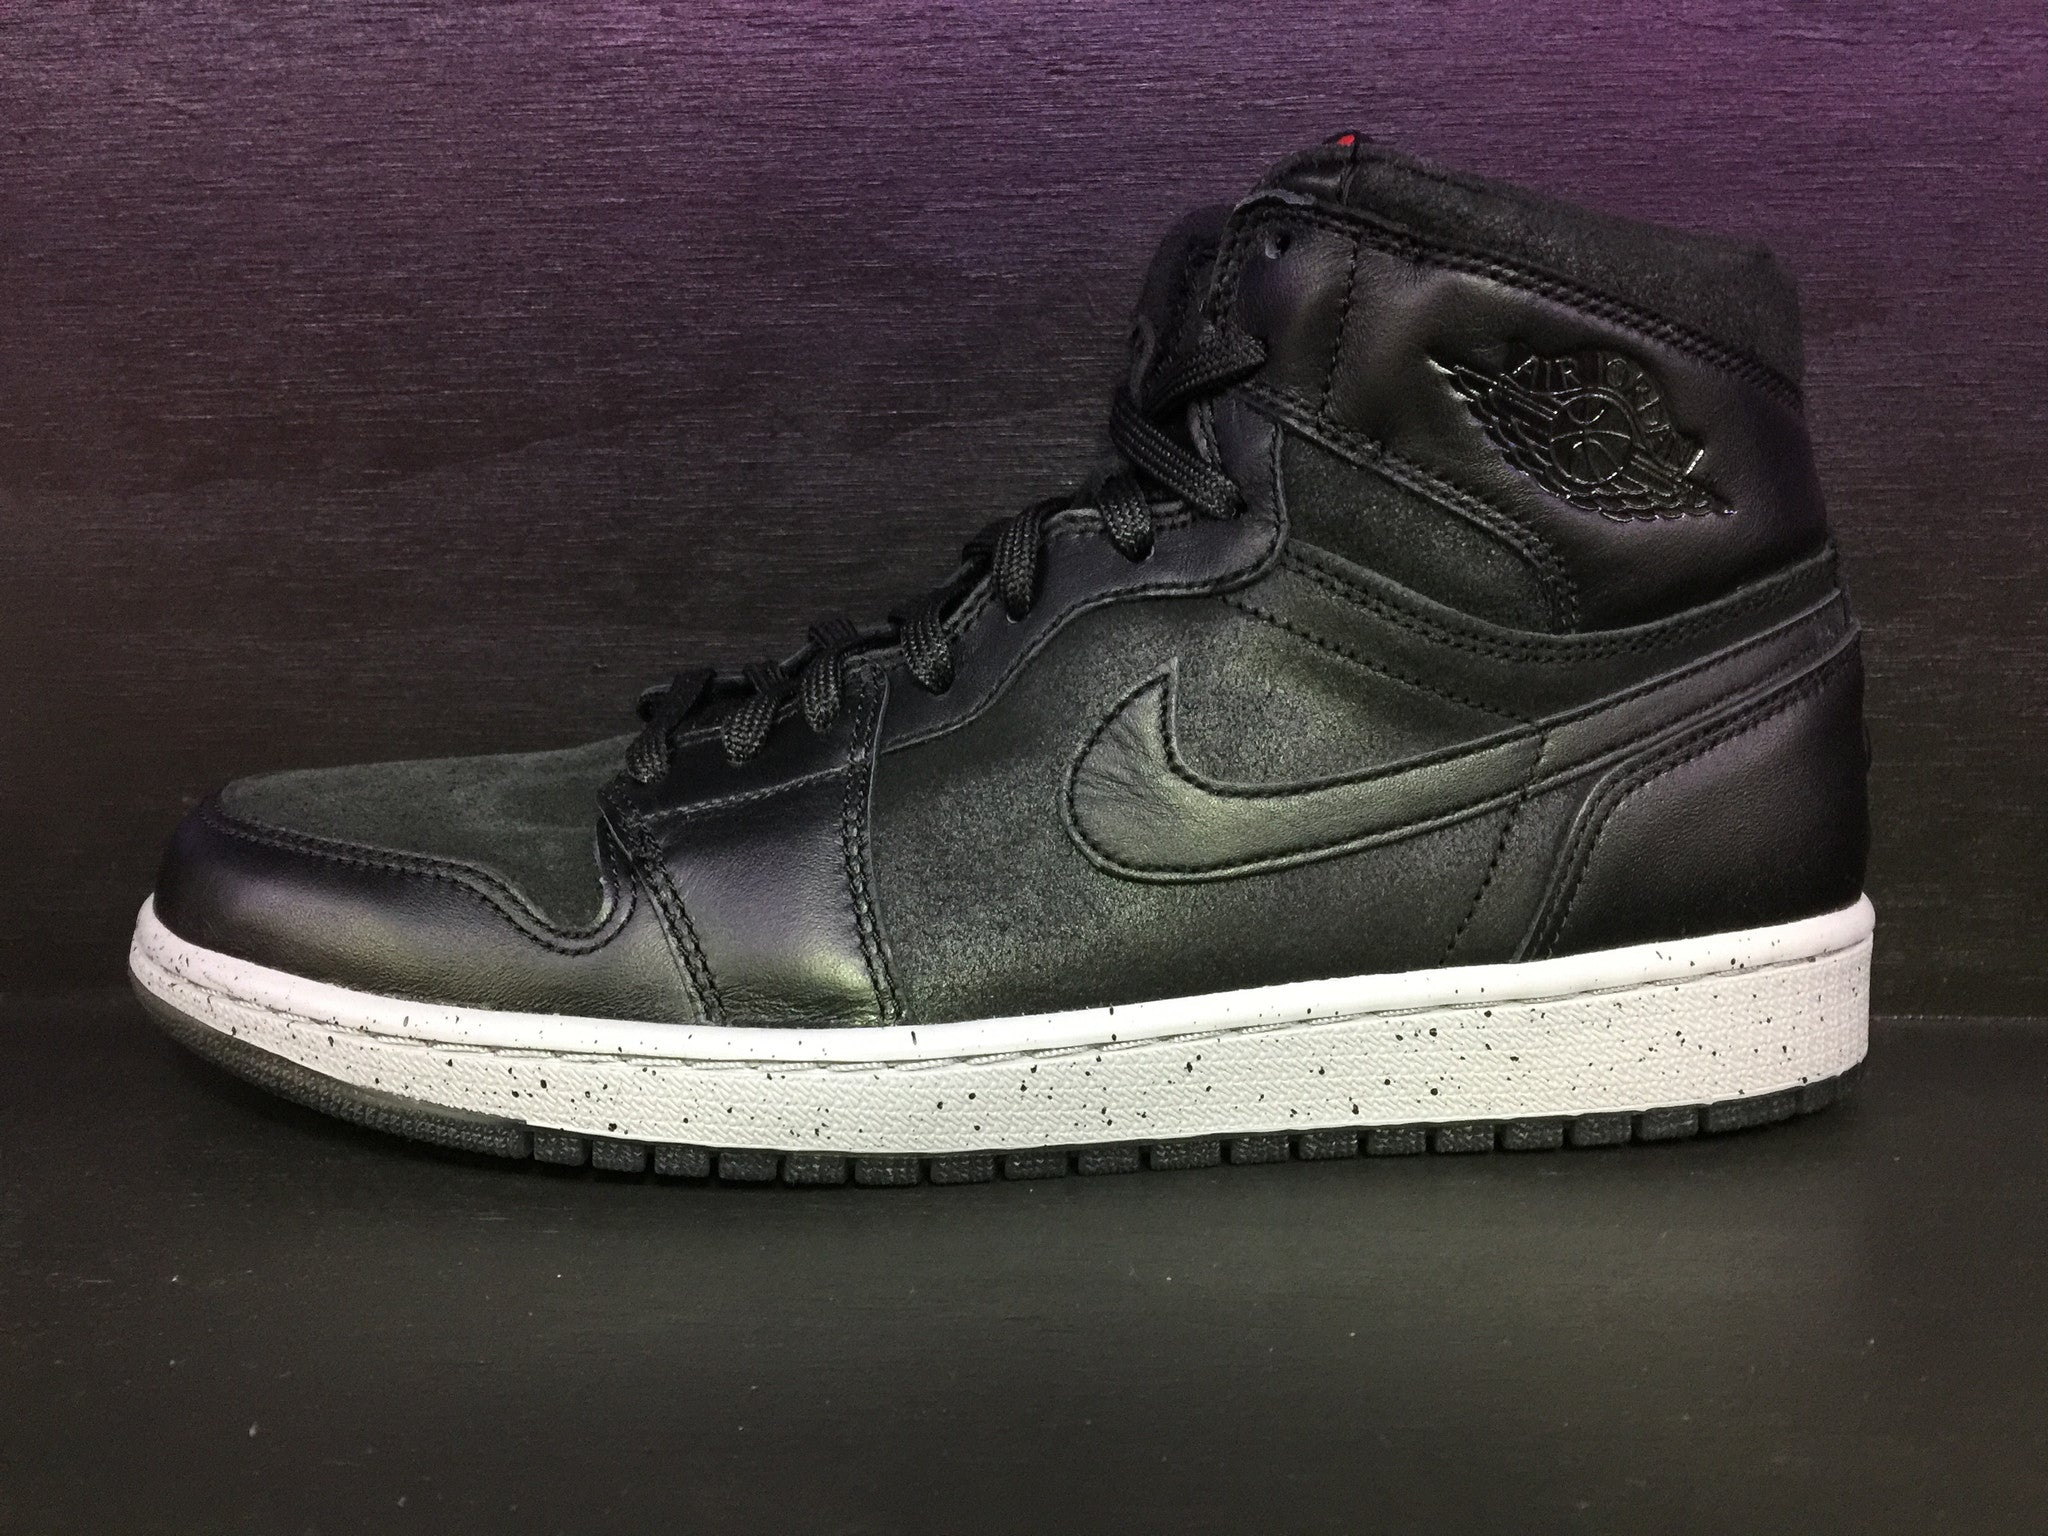 Air Jordan 1 Retro Hi NYC